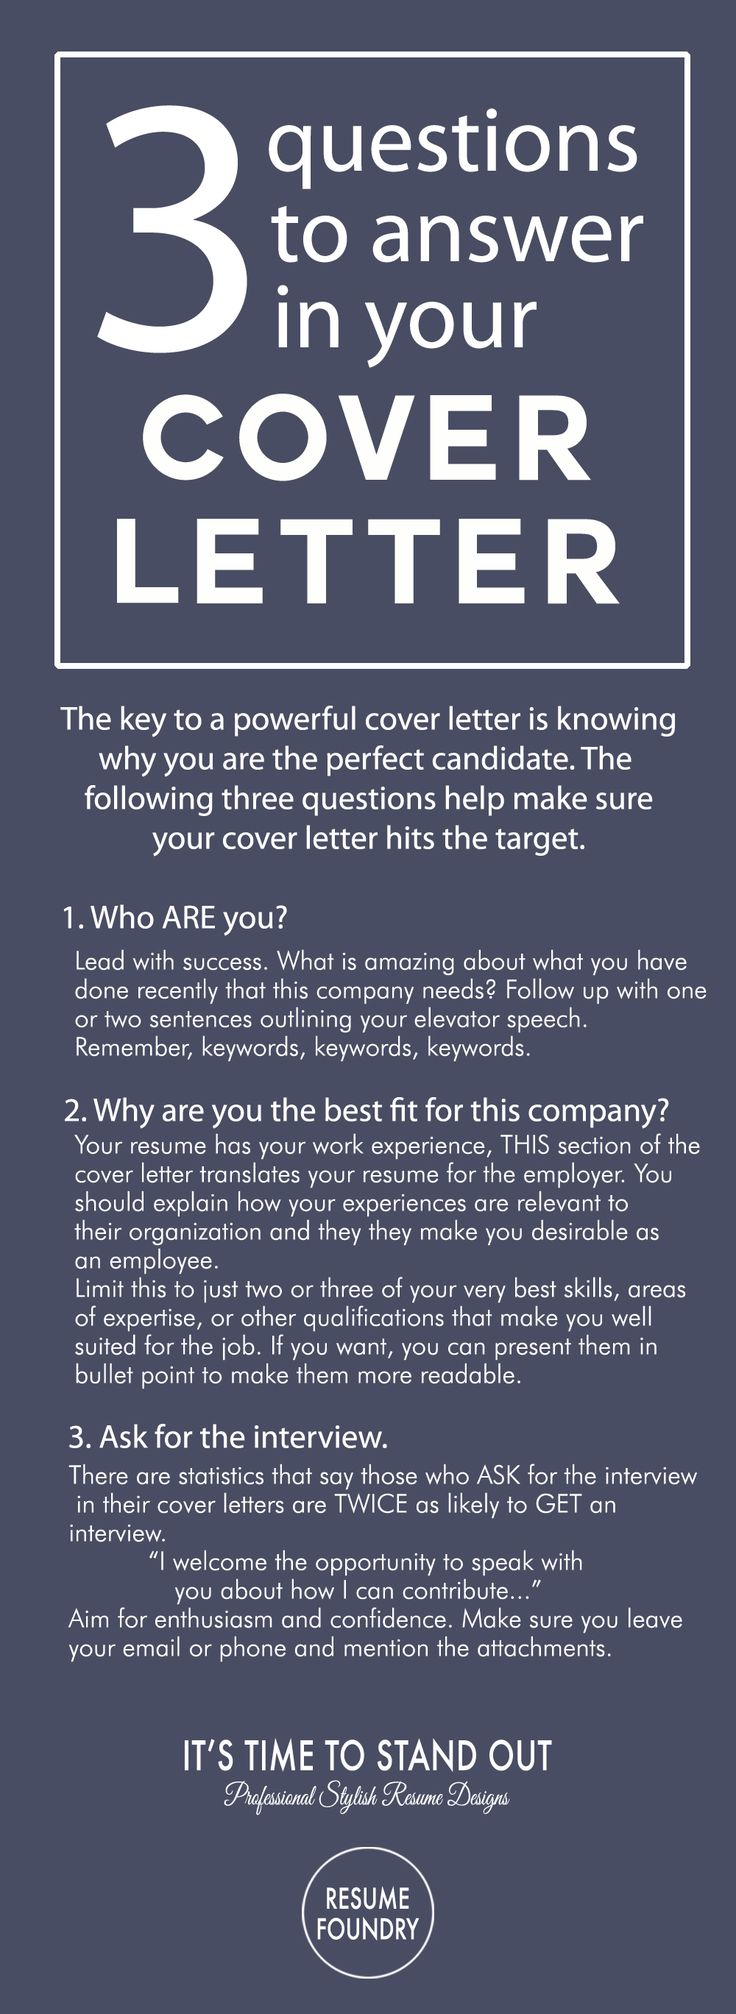 best ideas about cover letters cover letter tips cover letter tips outline how to write a cover letter